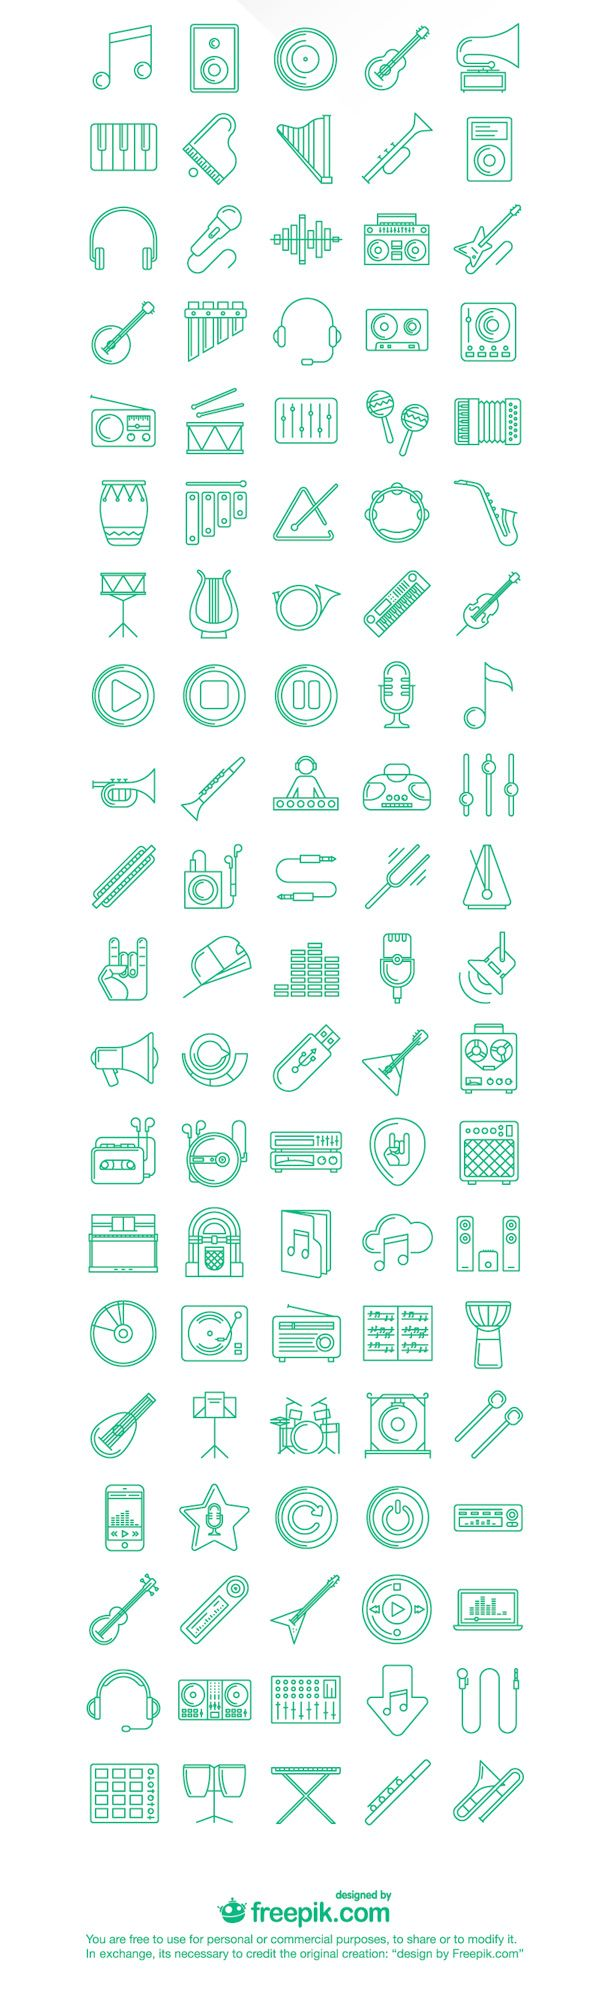 Free Download : 100 Music Icons (SVG, PNG)